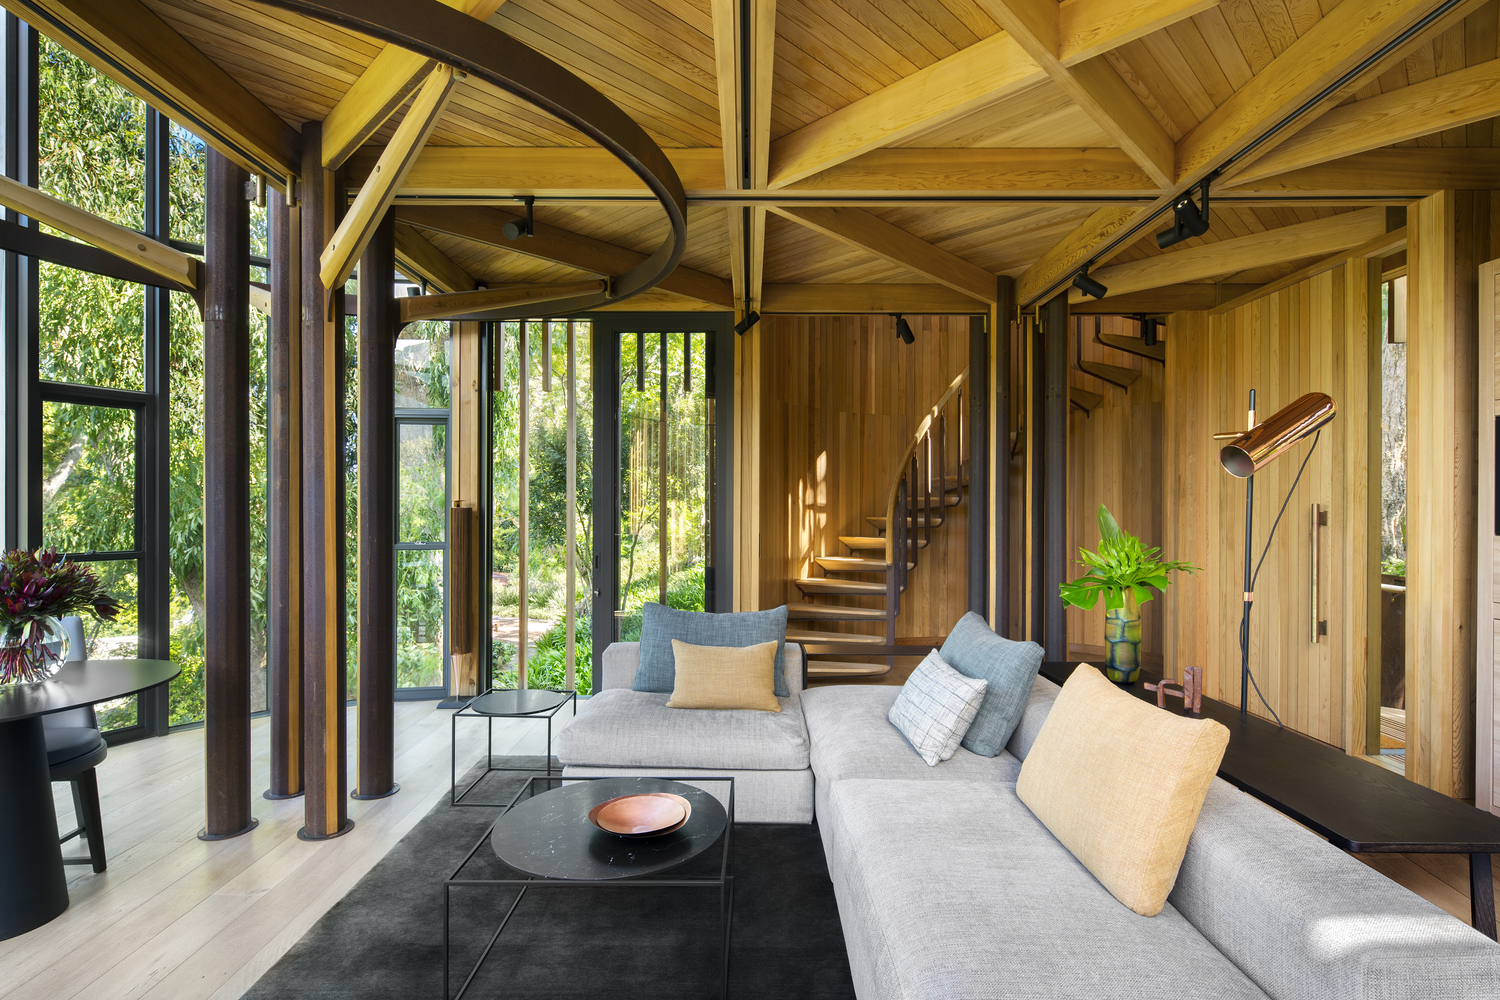 Gallery of Tree House / Malan Vorster Architecture Interior Design on office slides, wood slides, easter slides, tree houses for adults, roller bearing slides, park slides, tree themed playgrounds, tree houses for girls,